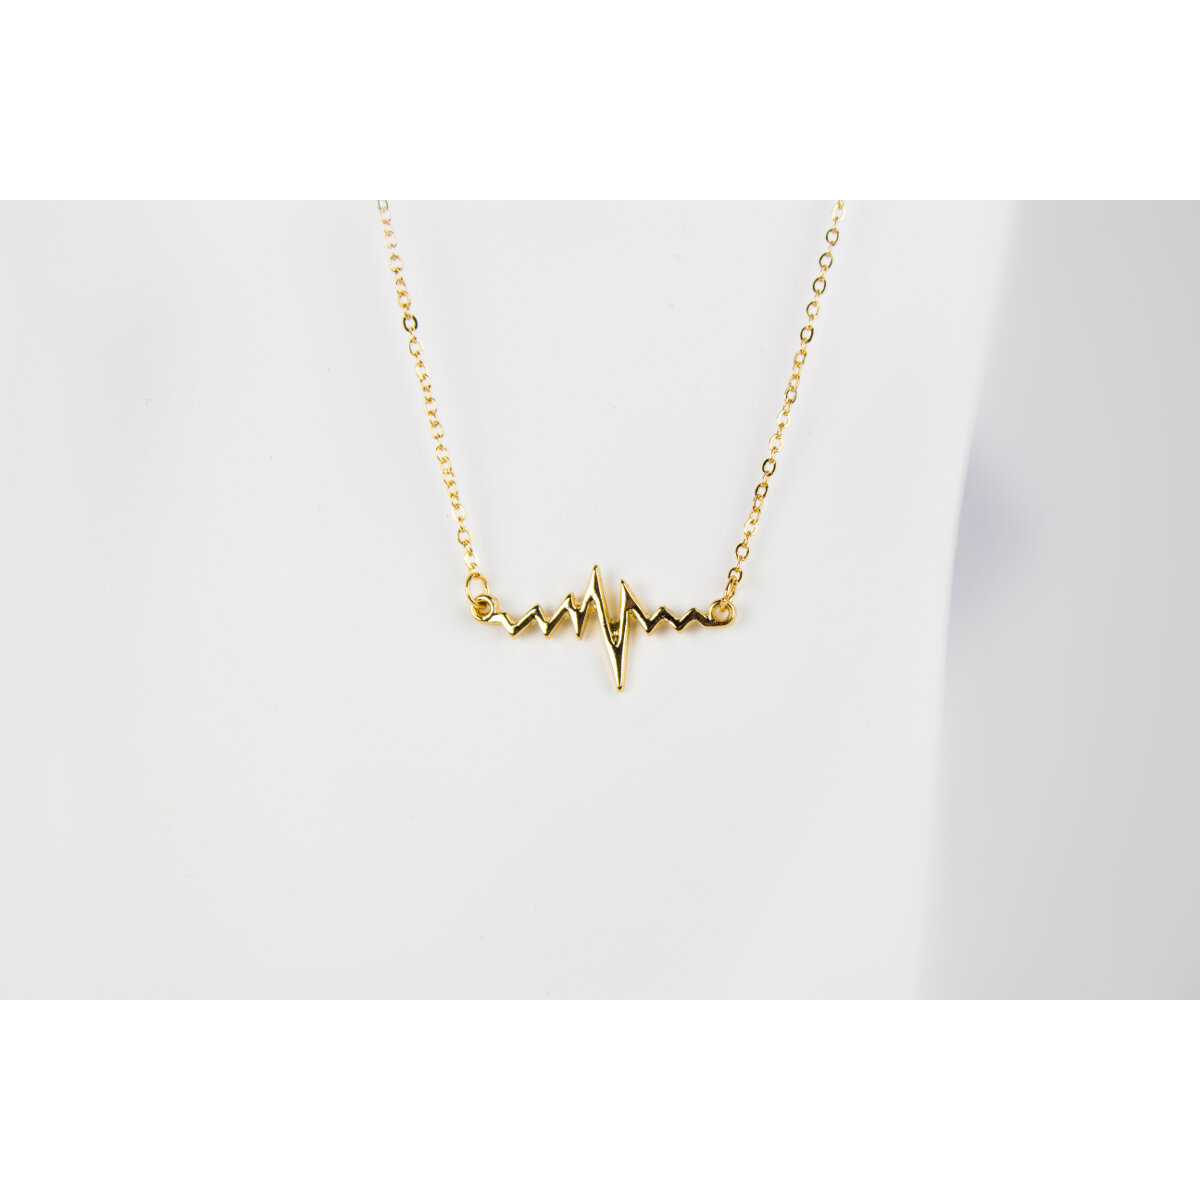 image heartbeat-gold-necklace-Main-image